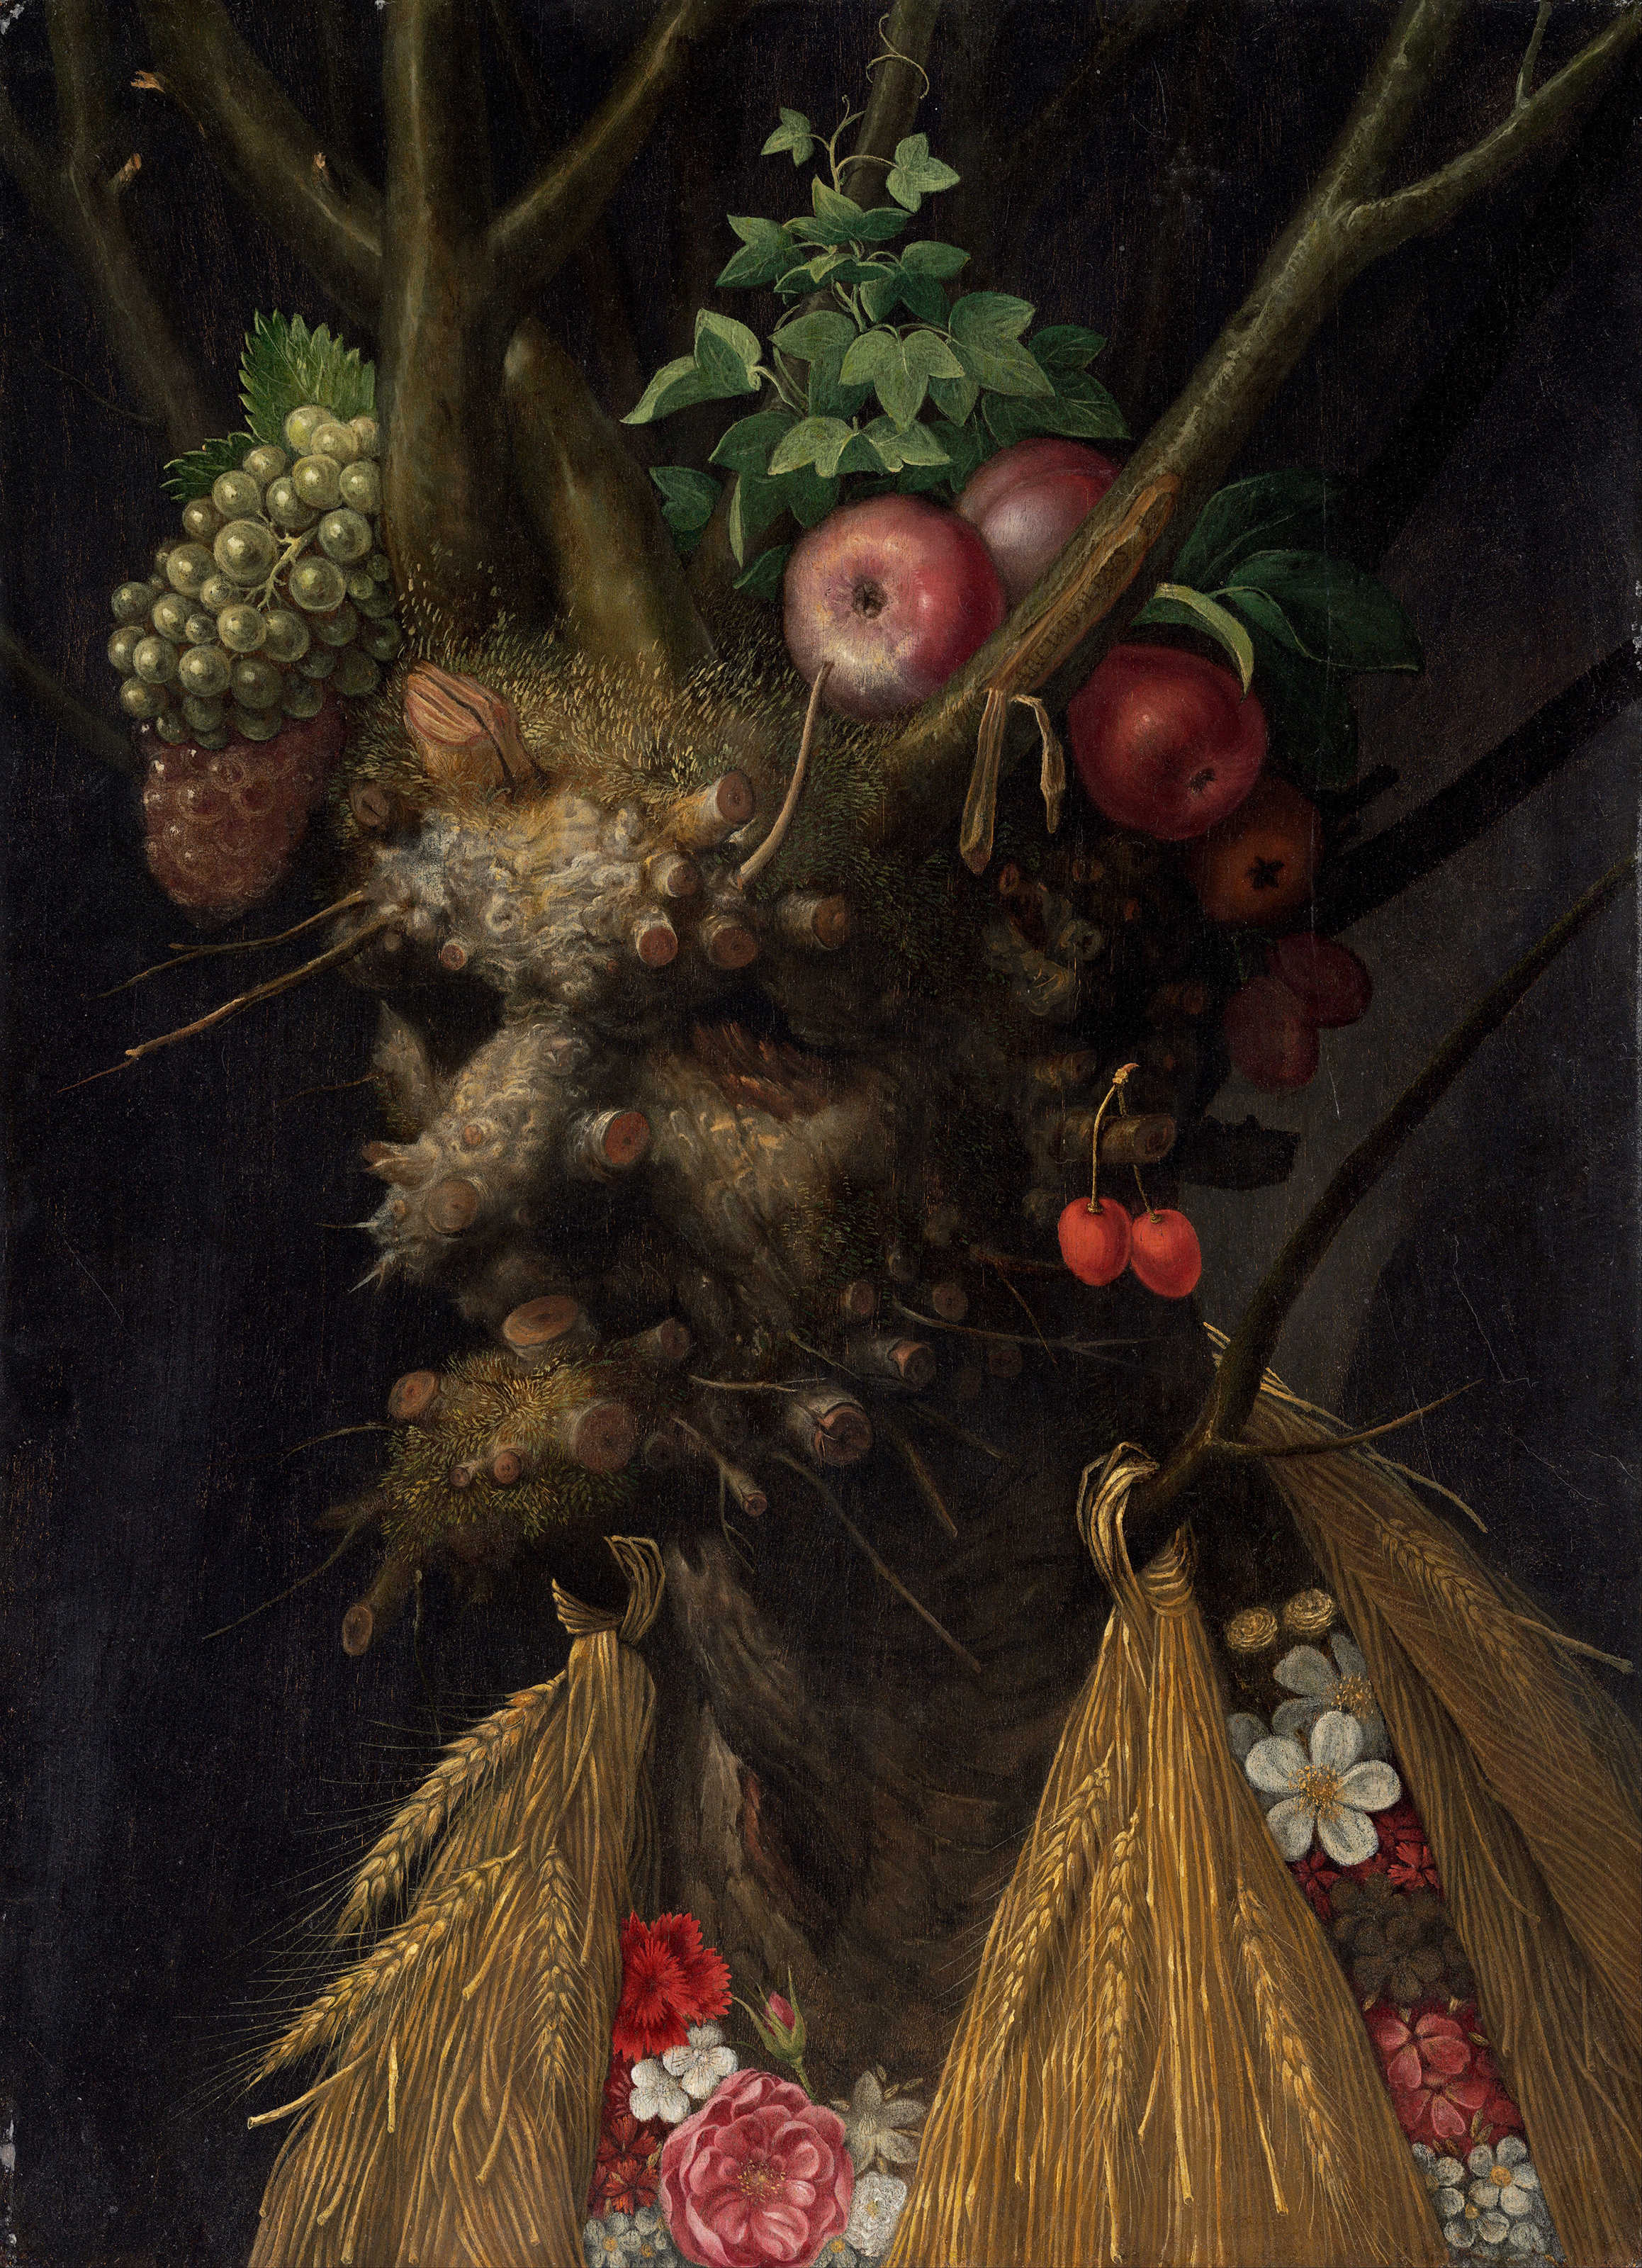 Giuseppe Arcimboldo, Four Seasons in One Head (1590)